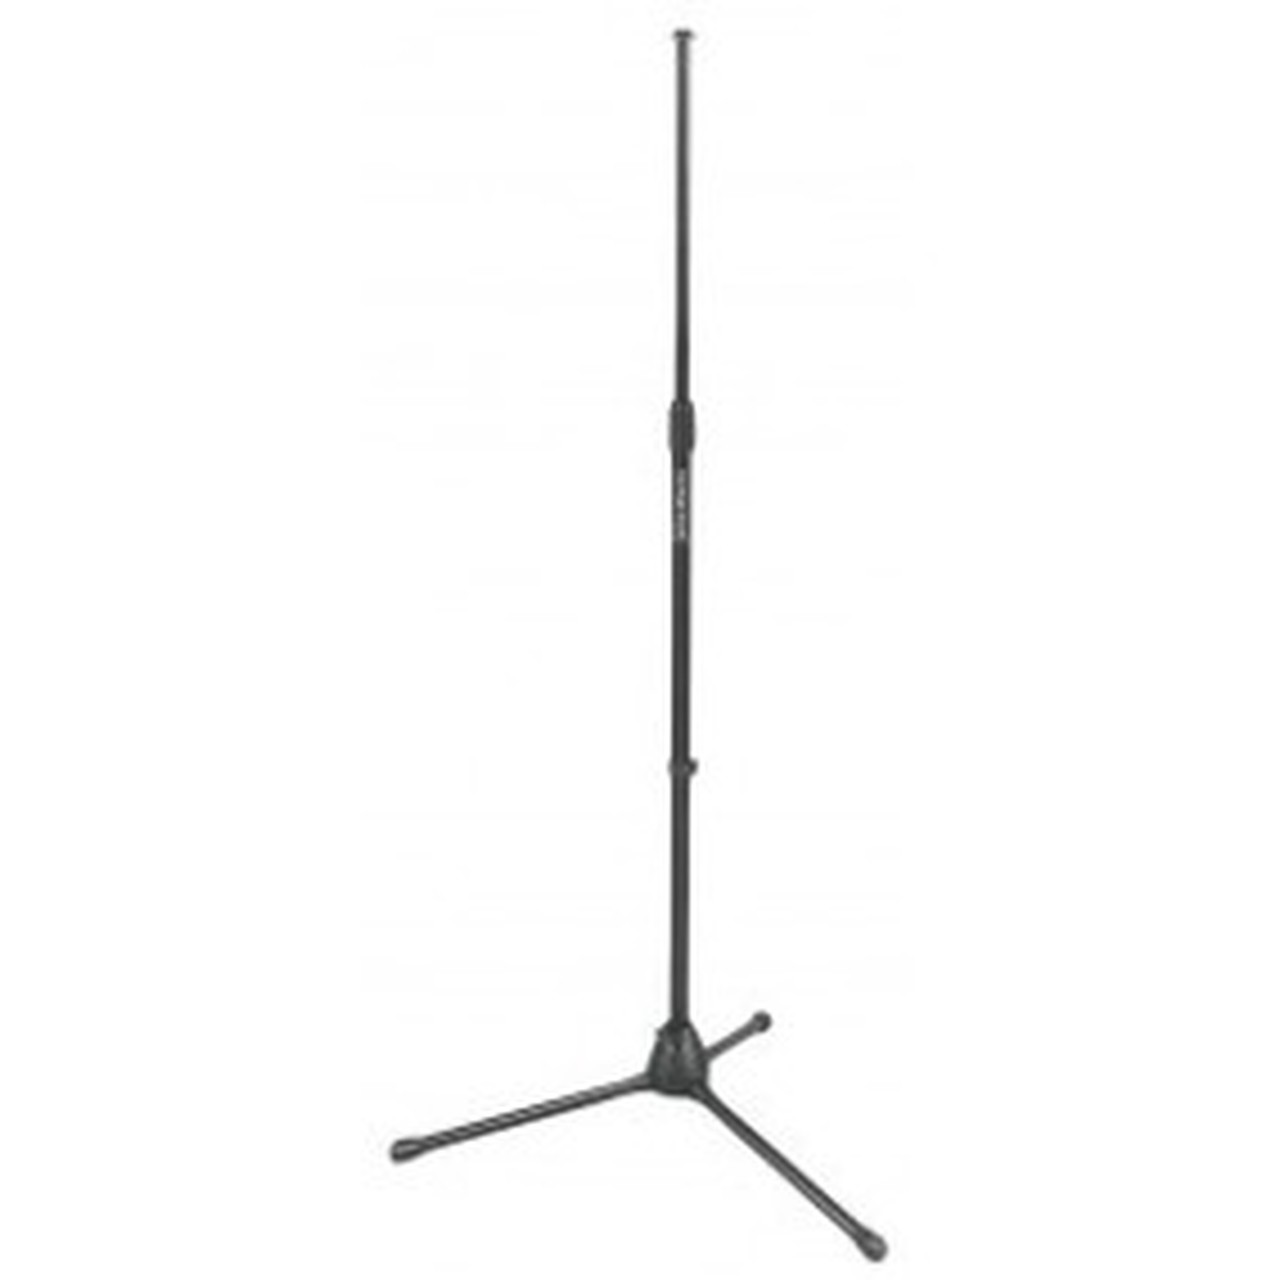 Pedestal Para Microfone On-stage Stands Euro MS7700B